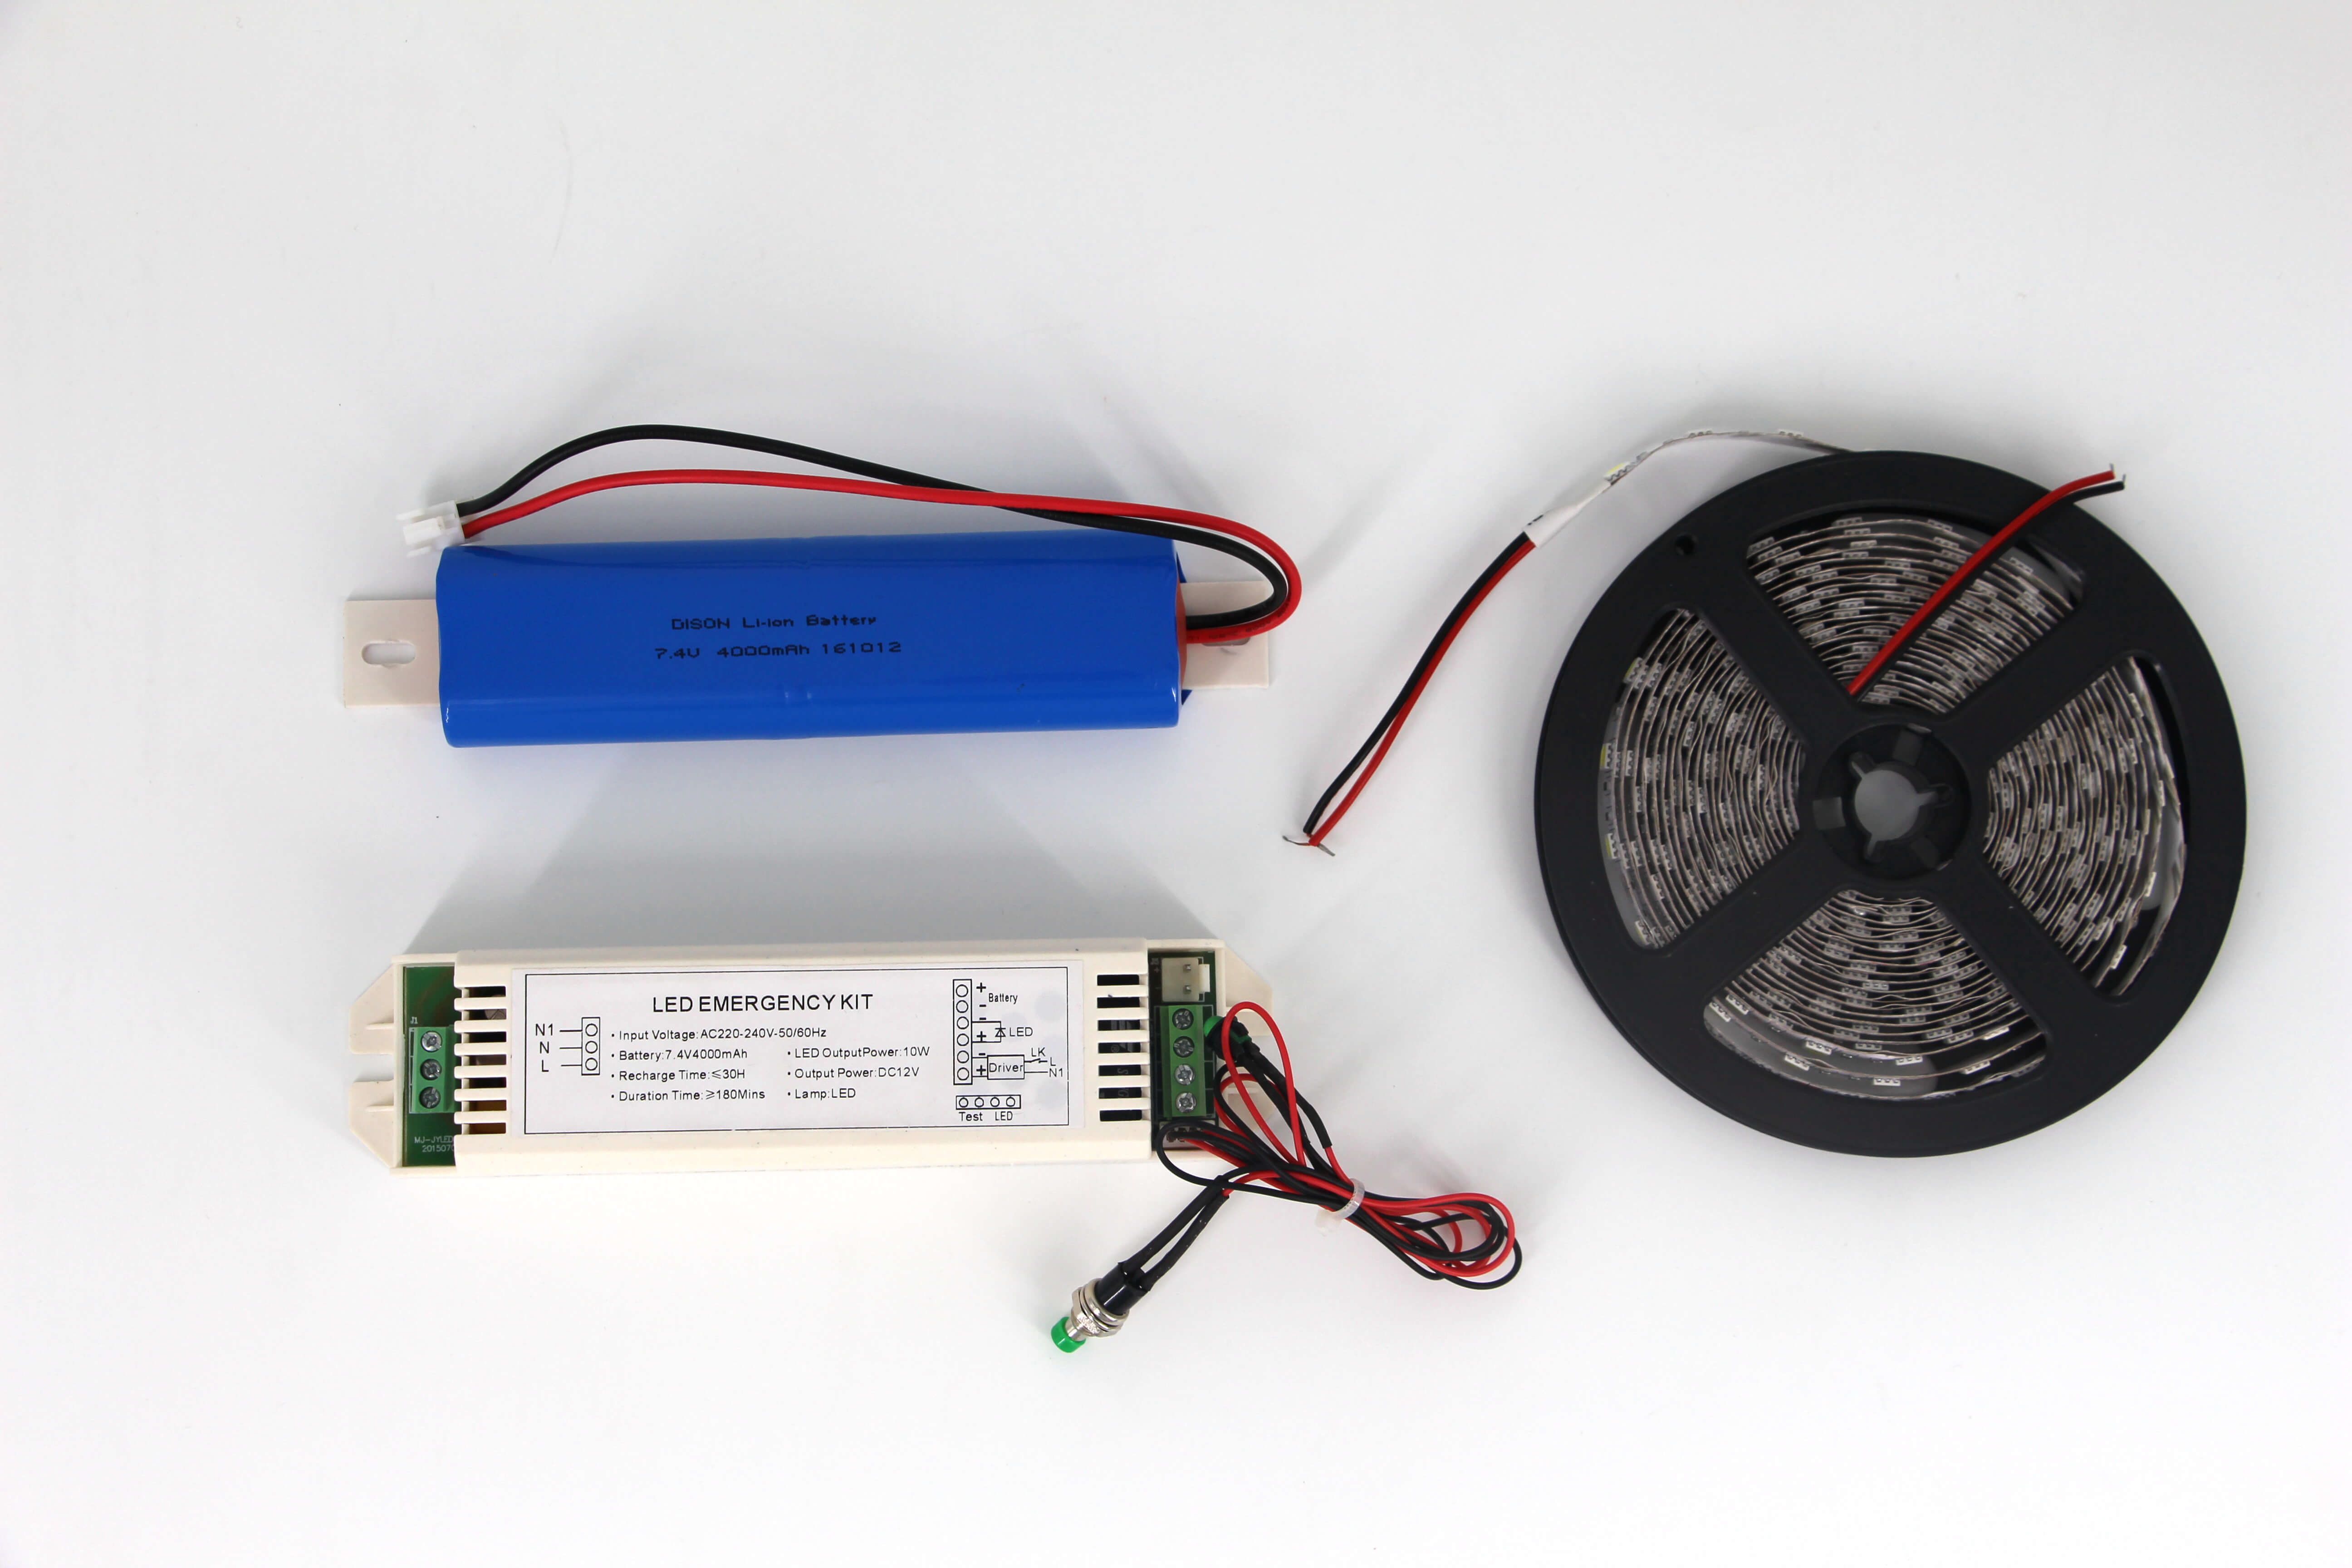 DC 12V output range for led Strip light with CE 50W max